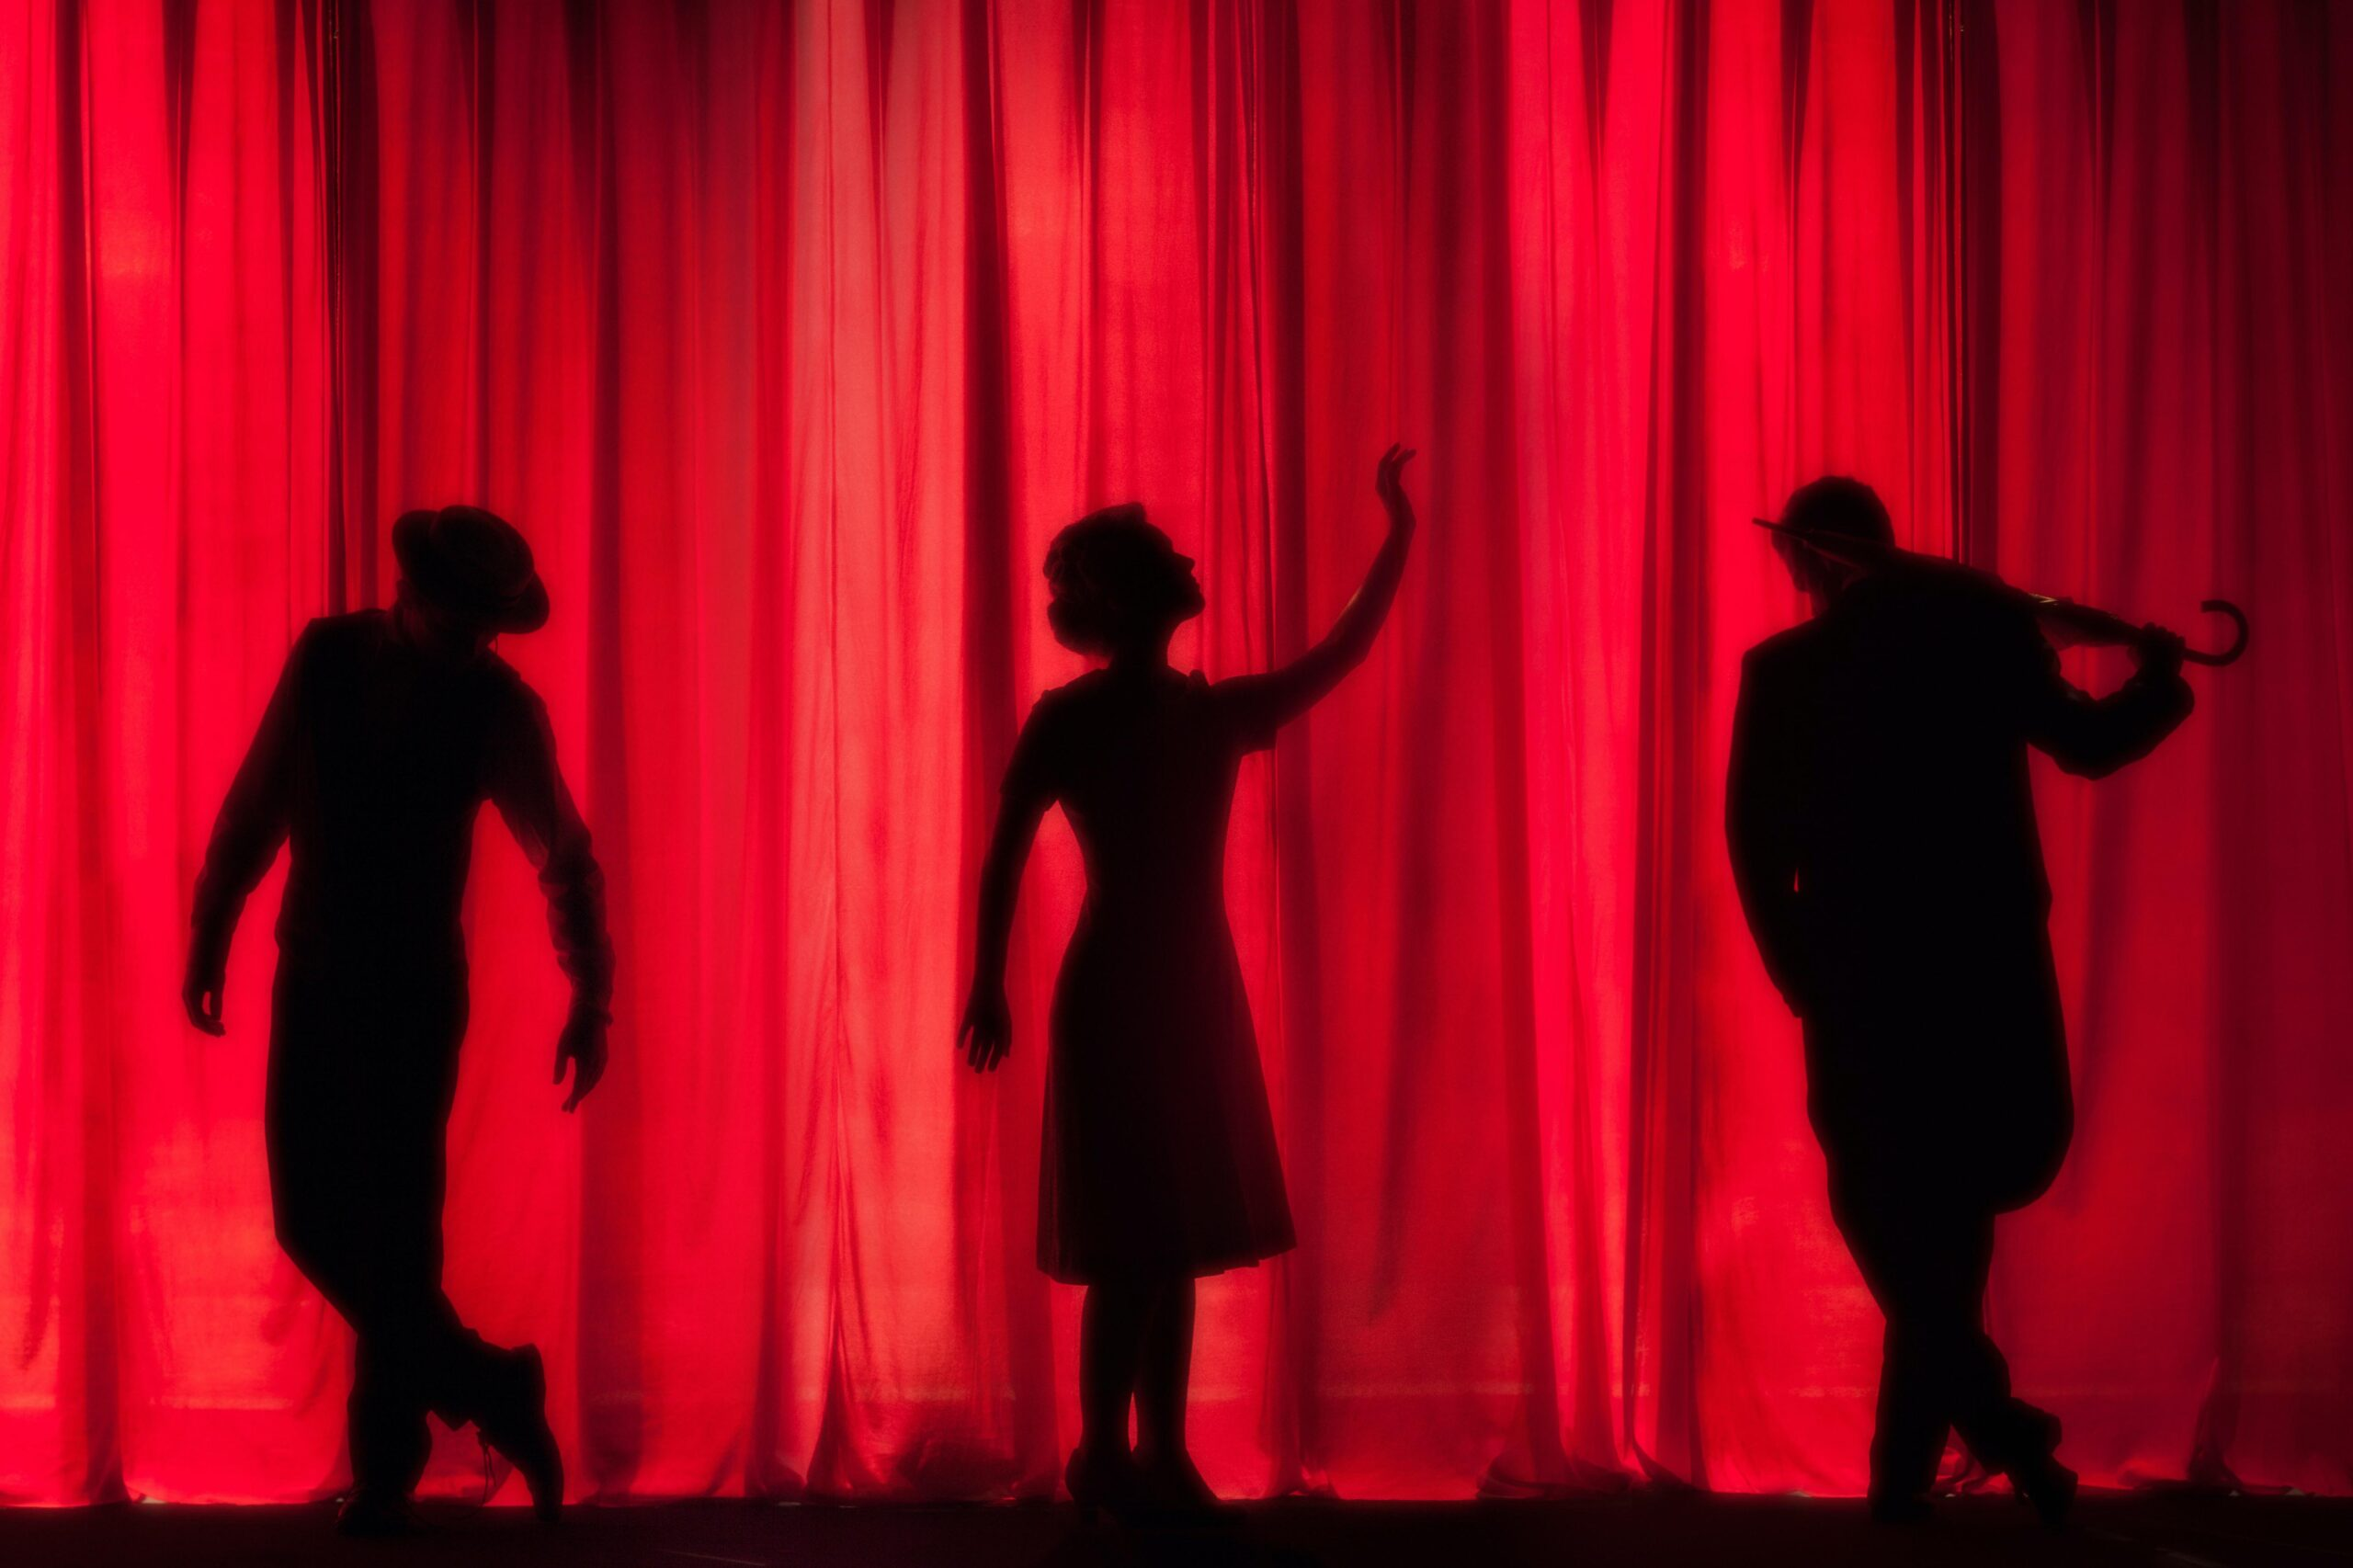 three figures in silhouette against a red curtain